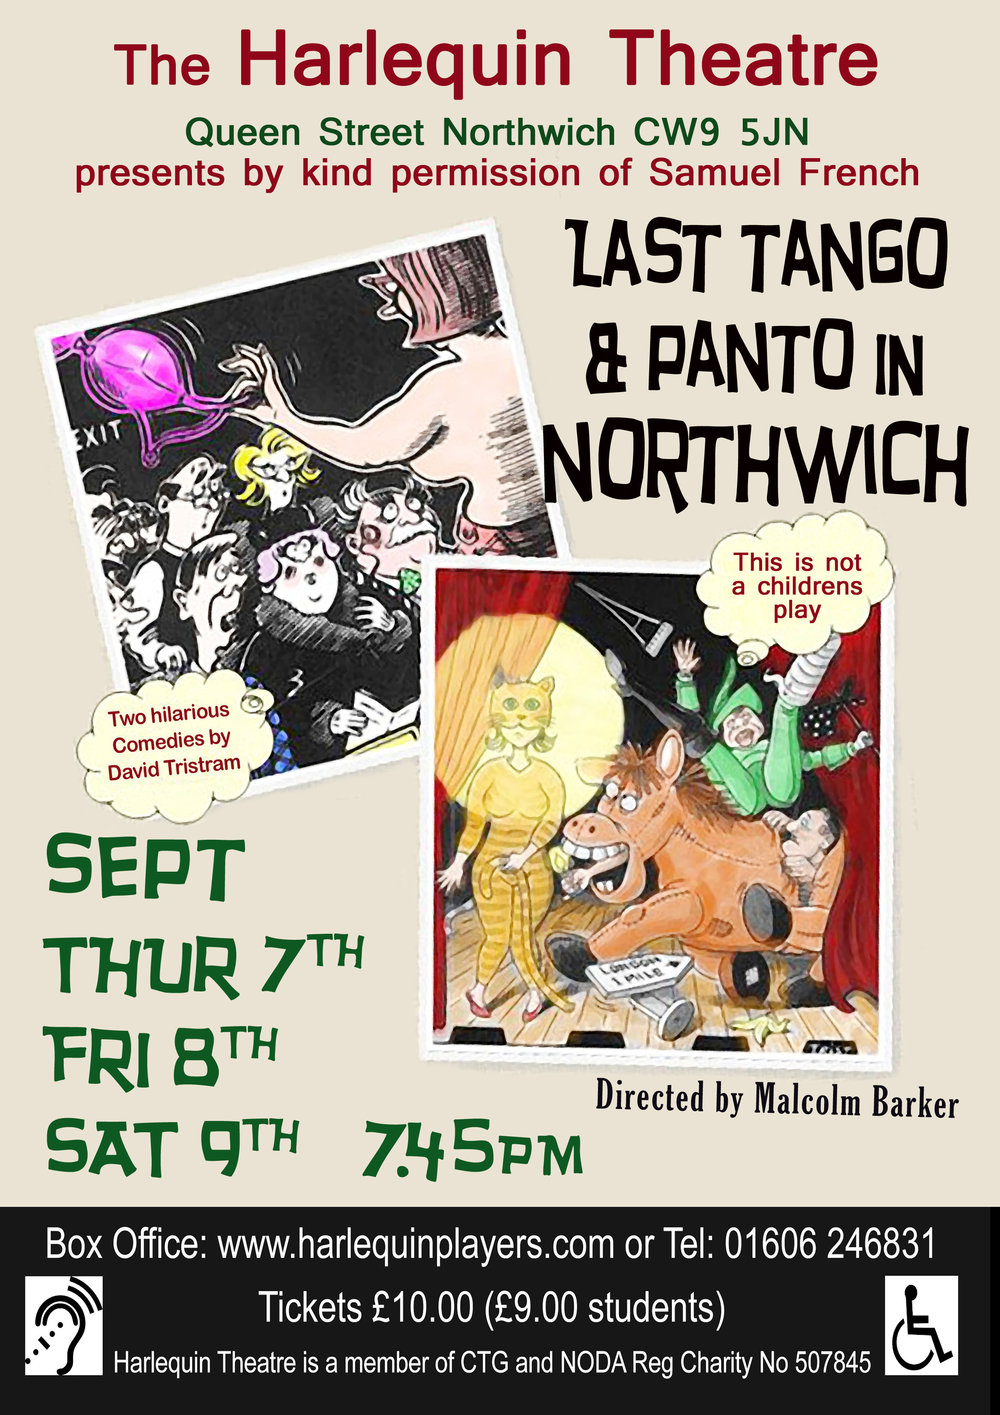 Last Tango and Panto in Northwich - by David Tristram